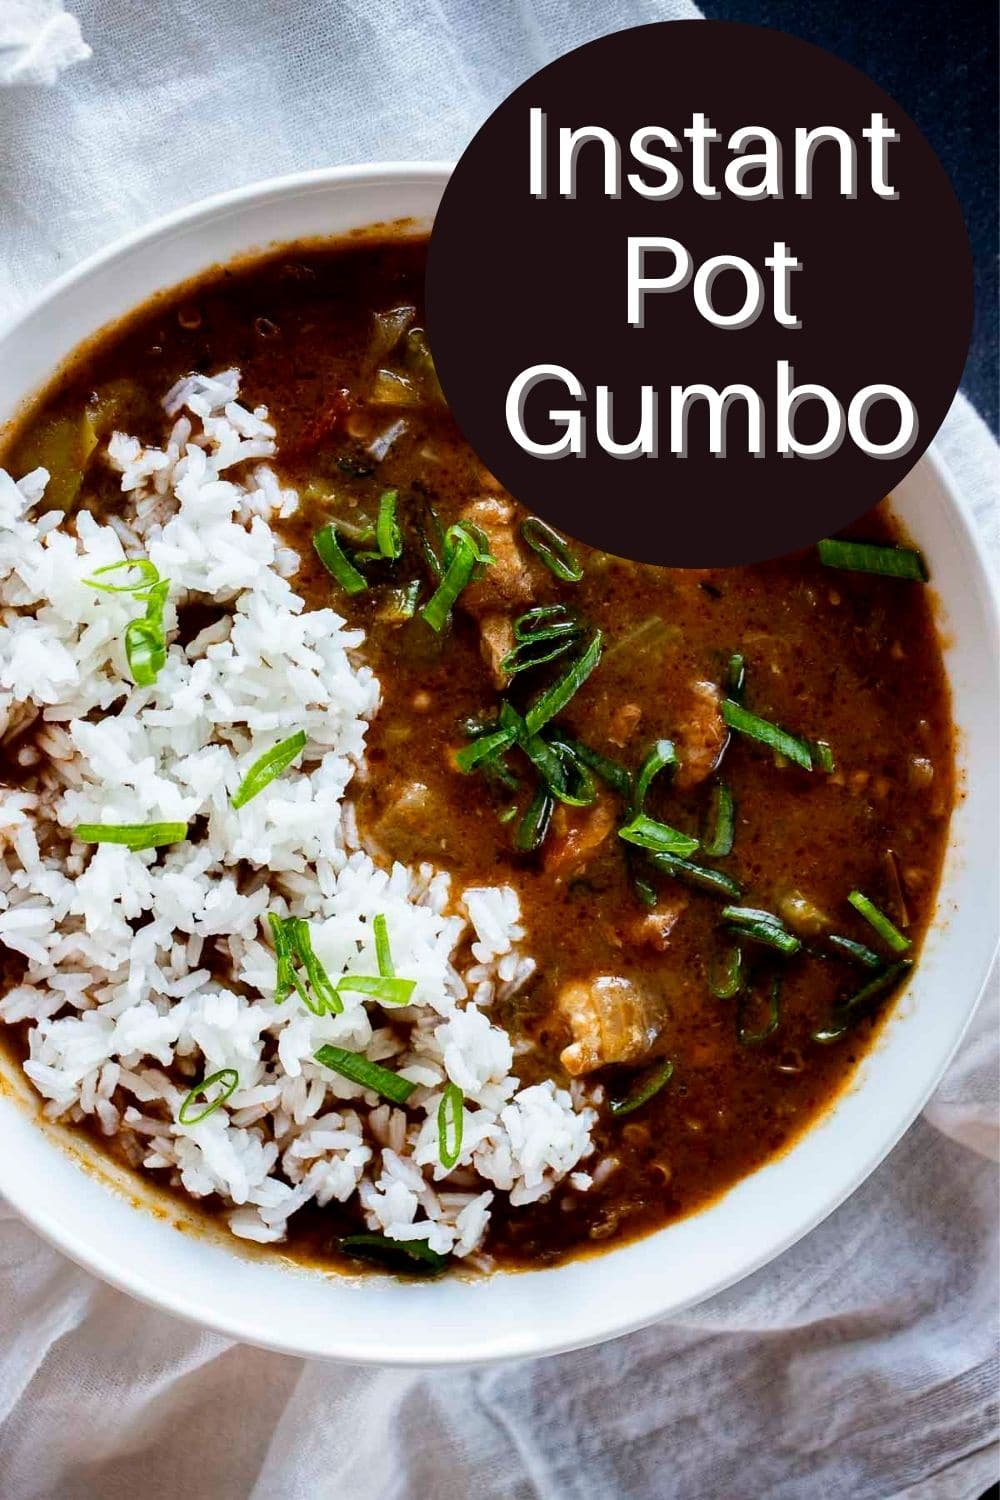 Instant Pot Gumbo (Chicken and Sausage)